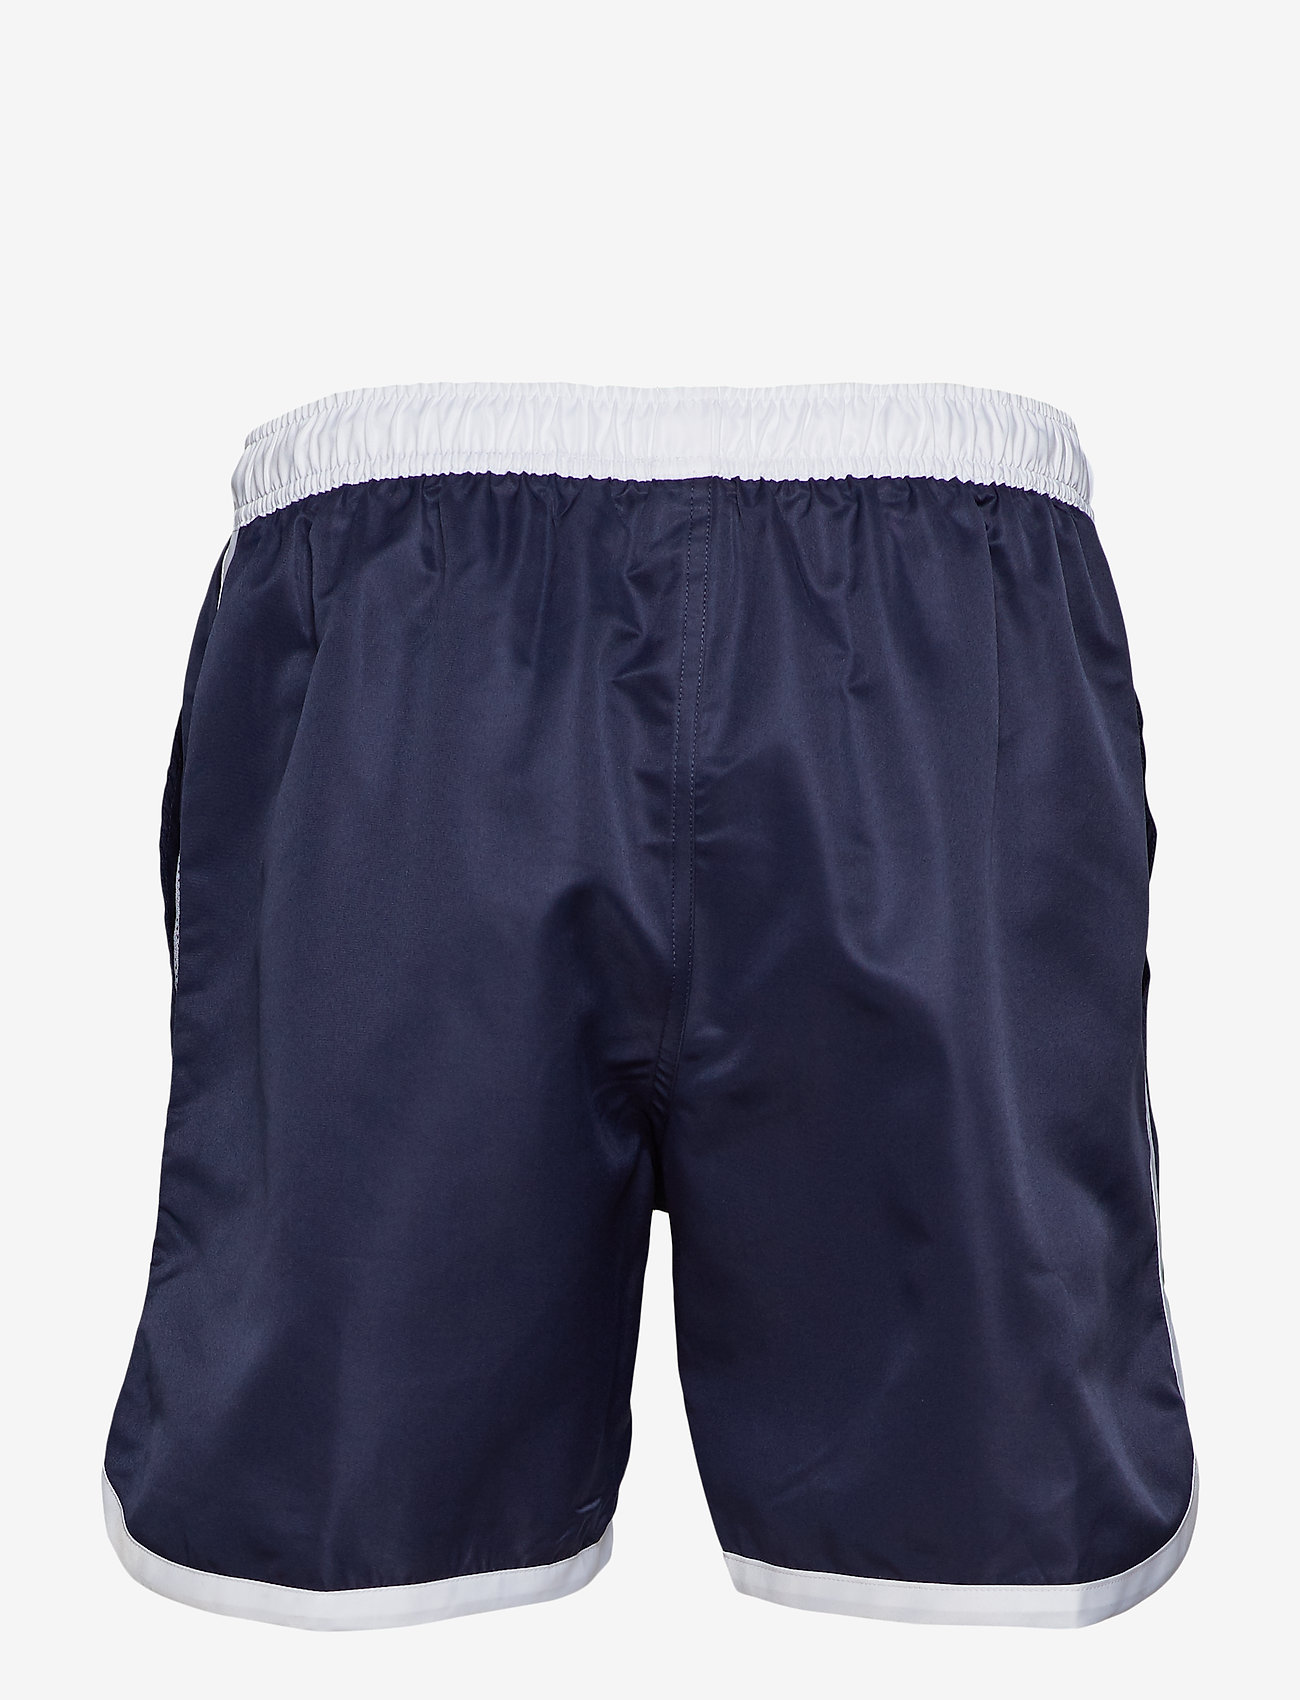 St Paul Long Bermuda Shorts (Dark Navy) - Frank Dandy 7zJvxb